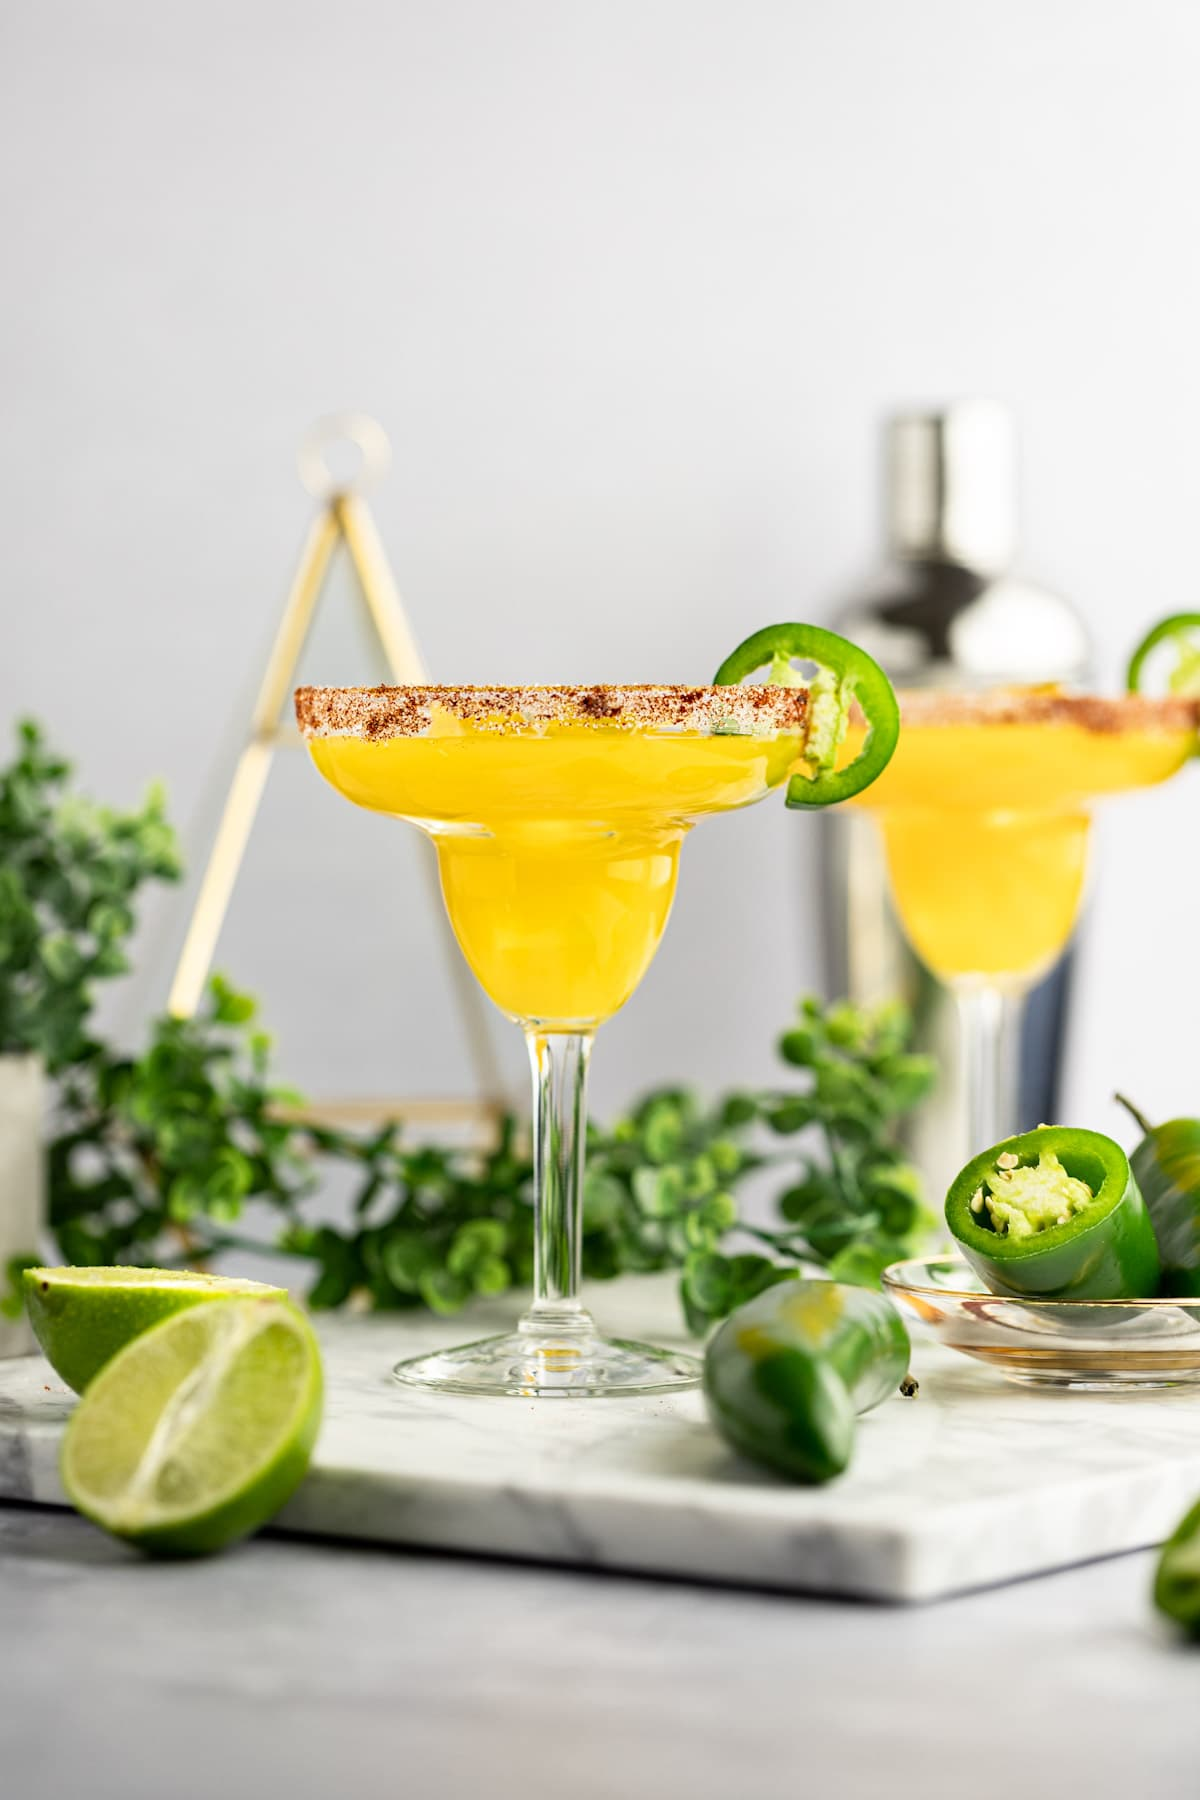 Two margaritas garnished with jalapeños, on a grey marble board, garnished with jalapeño slices, with green plants and a cocktail shaker in the background.